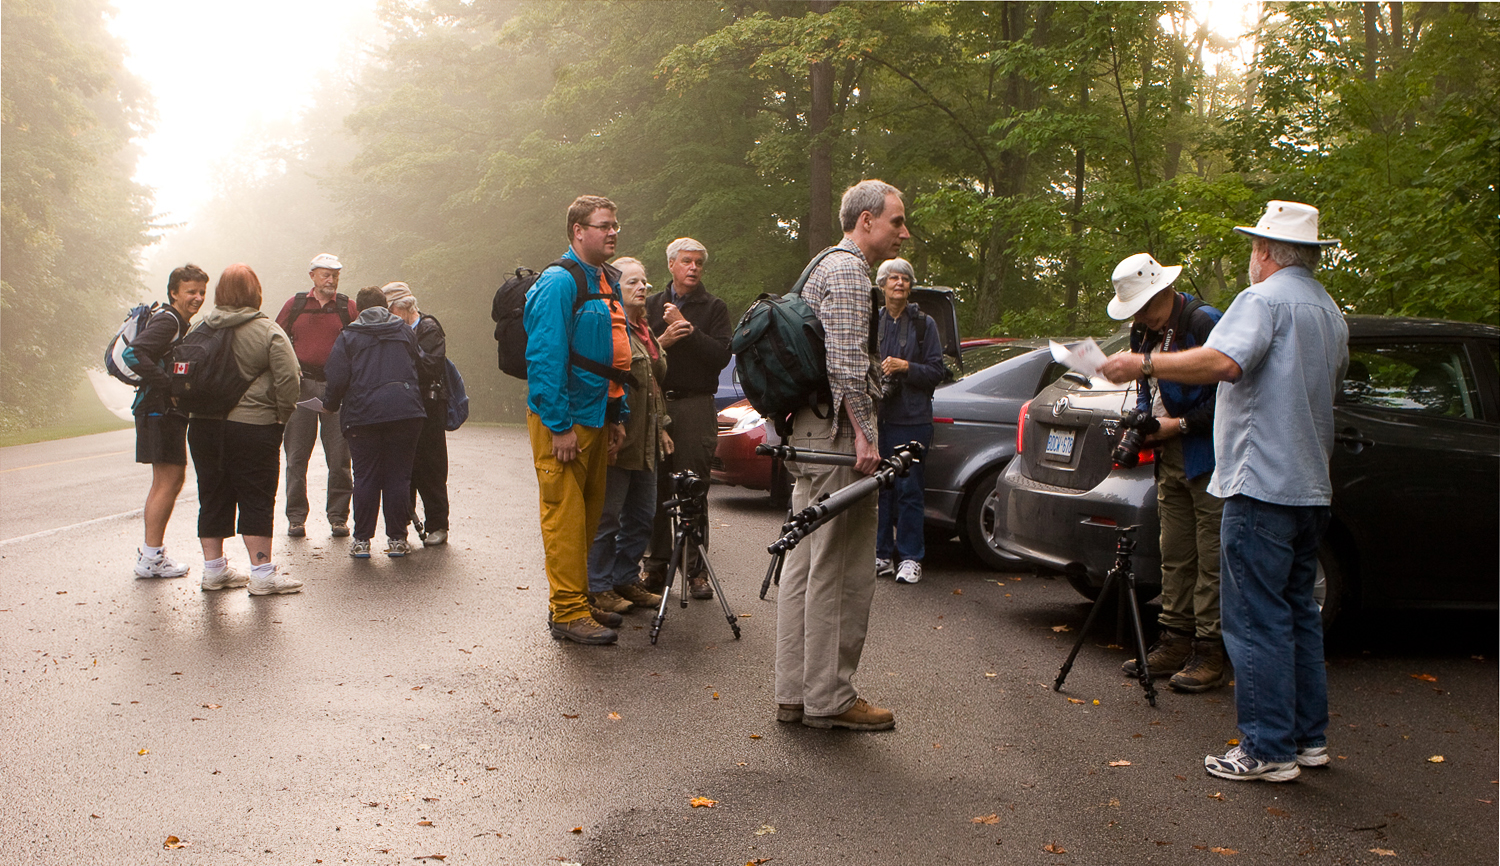 The Nature Group rallies for an early morning shoot. Pierre Gauthier photo